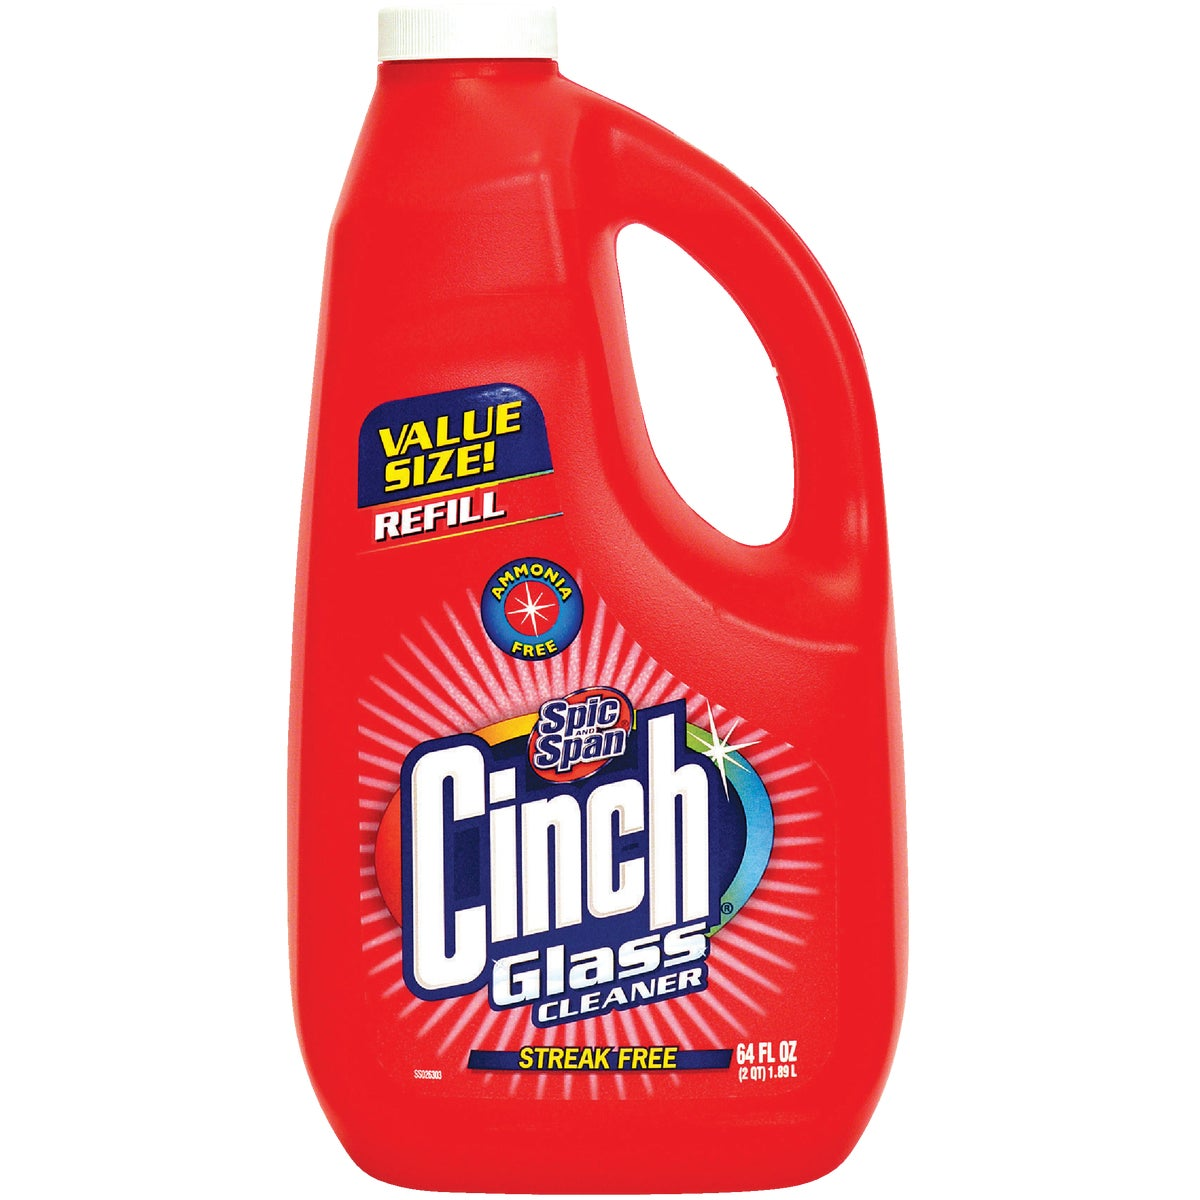 CINCH CLEANER REFILL - 00203 by Spic & Span Co